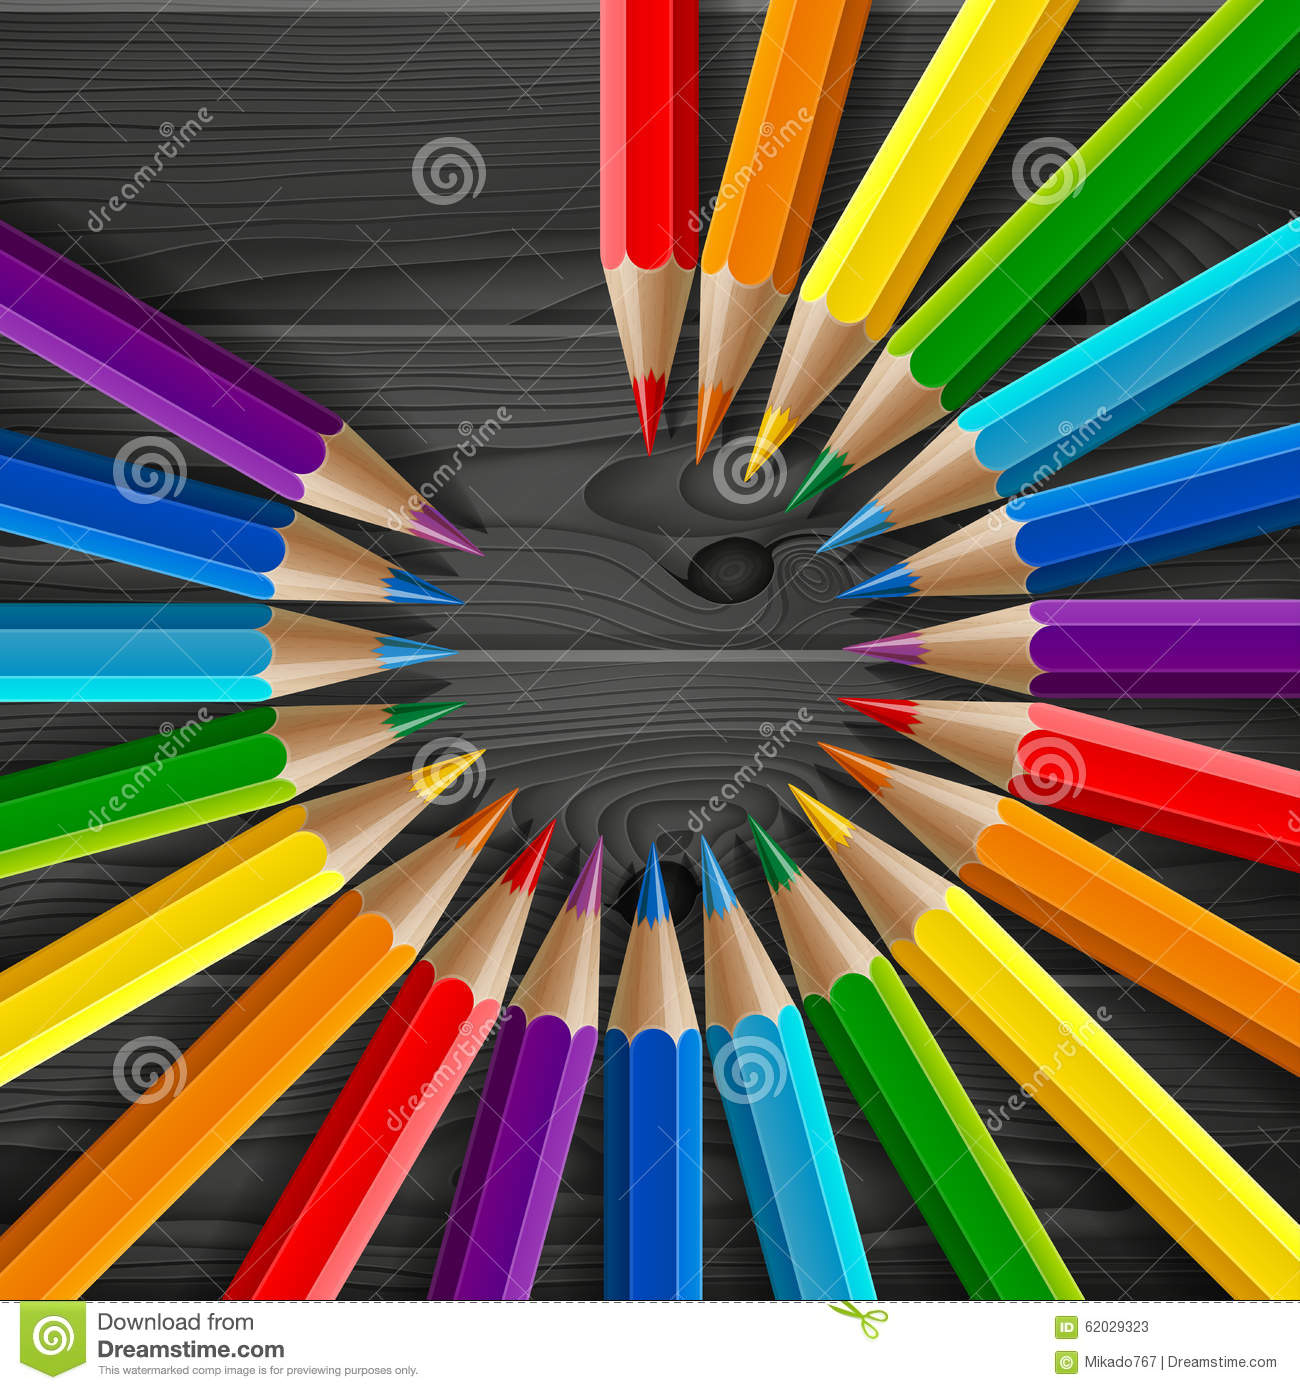 how to draw a realistic rainbow pencil